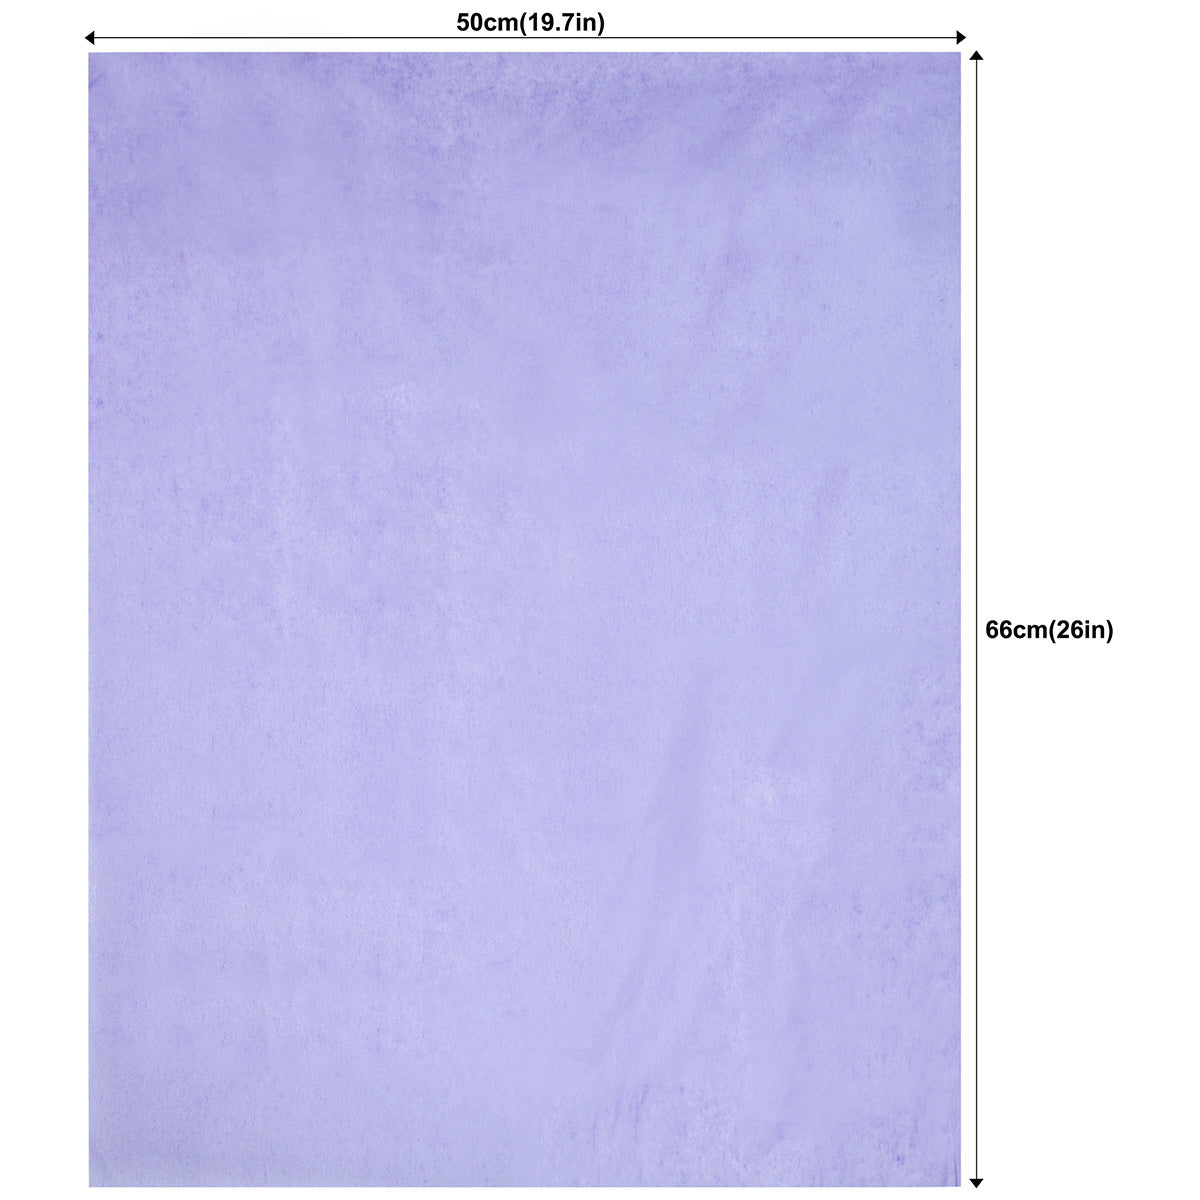 50 Sheets Light Purple Wrapping Tissue Paper